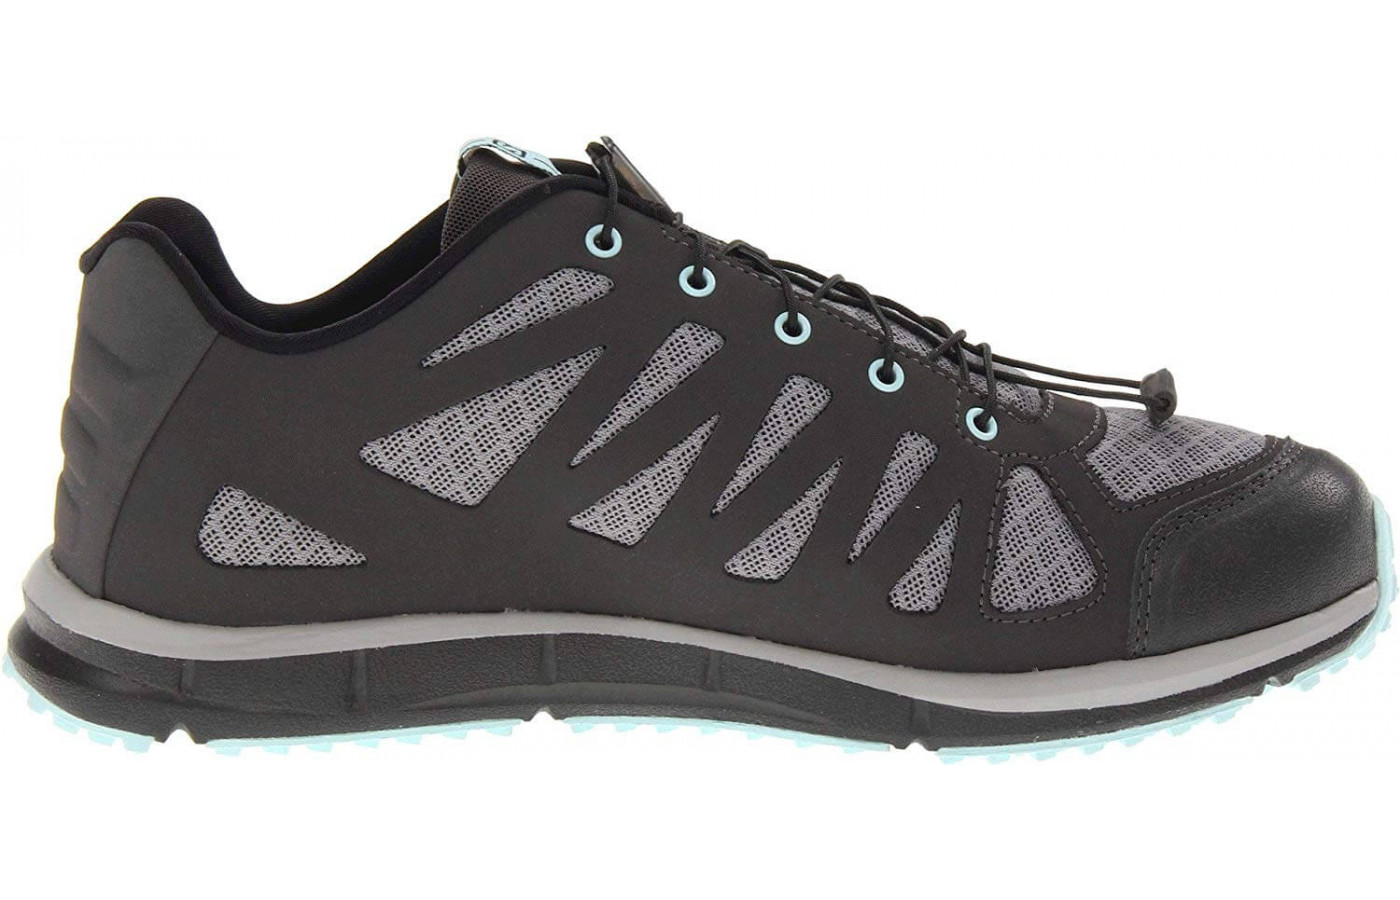 The Kalalau's upper is constructed with a quick-drying nylon mesh